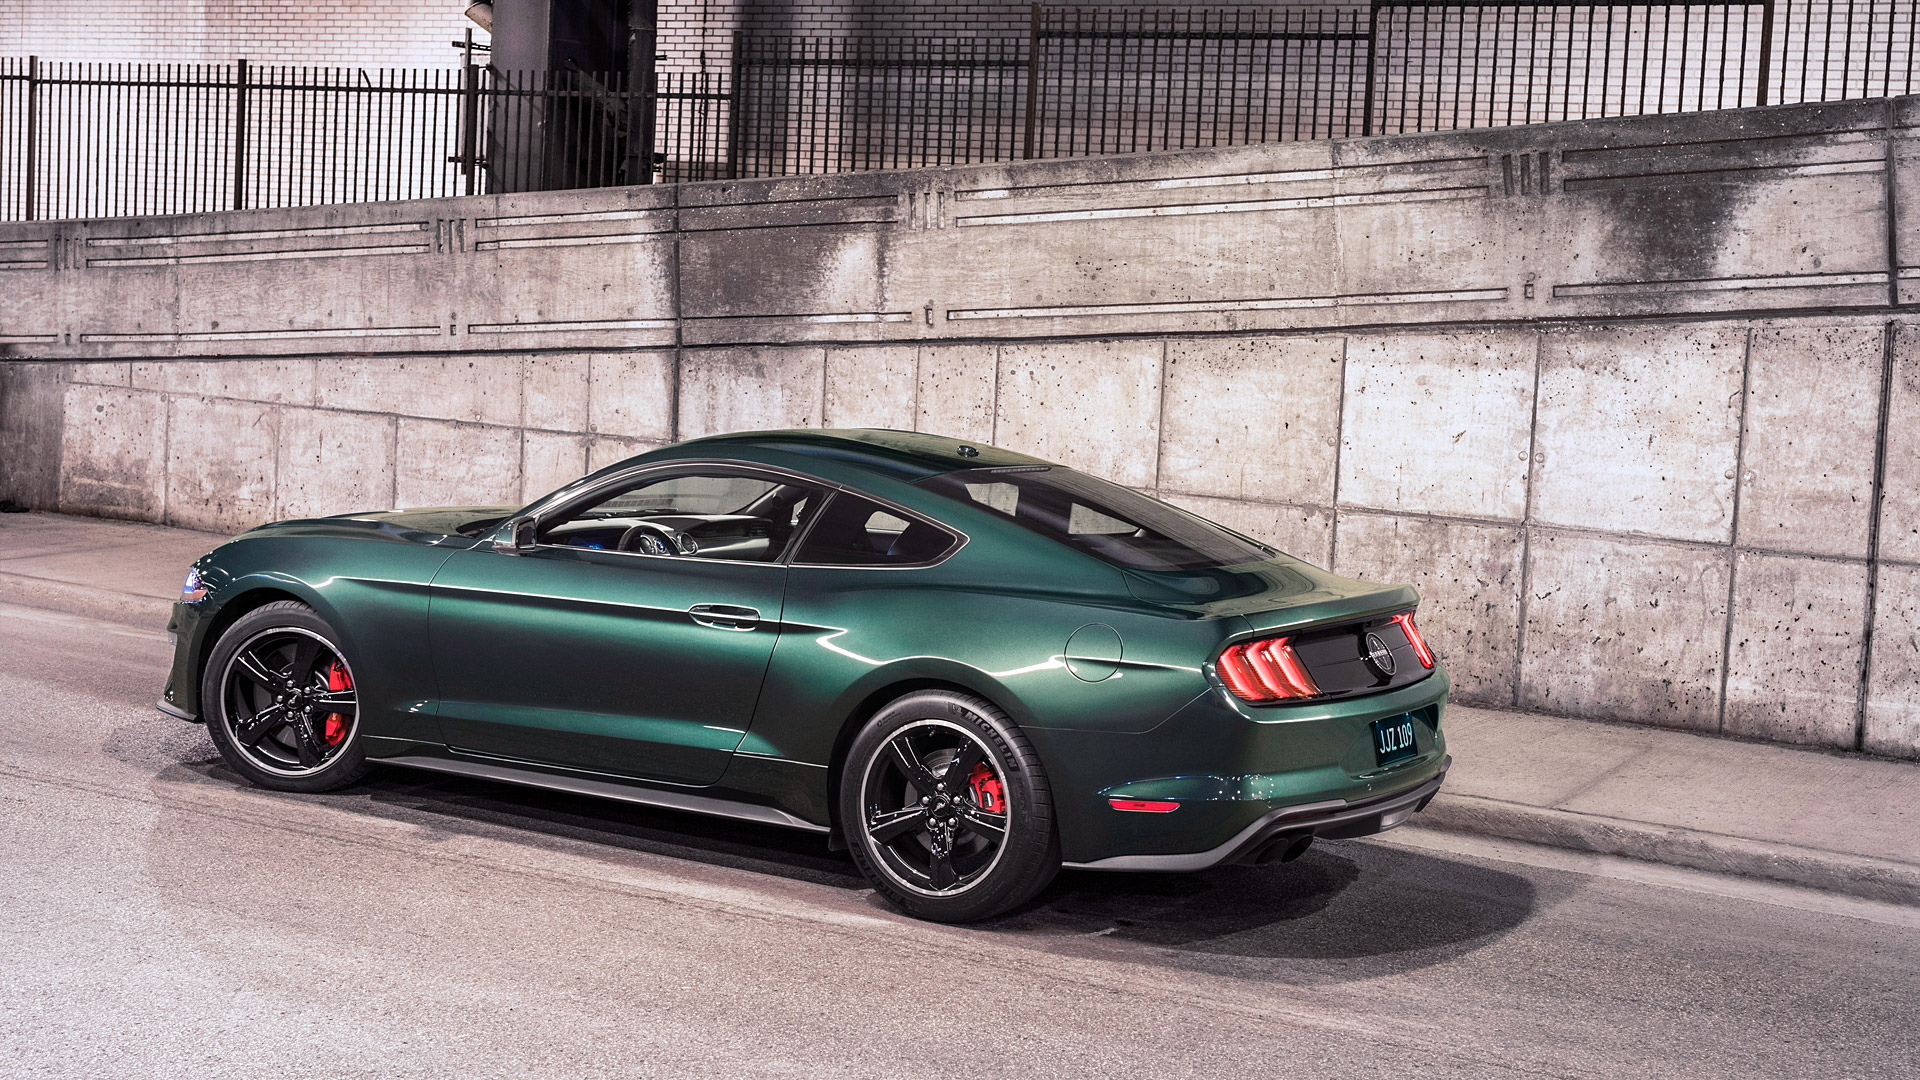 2019 Ford Mustang Bullitt Wallpapers HD Images   WSupercars 1920x1080